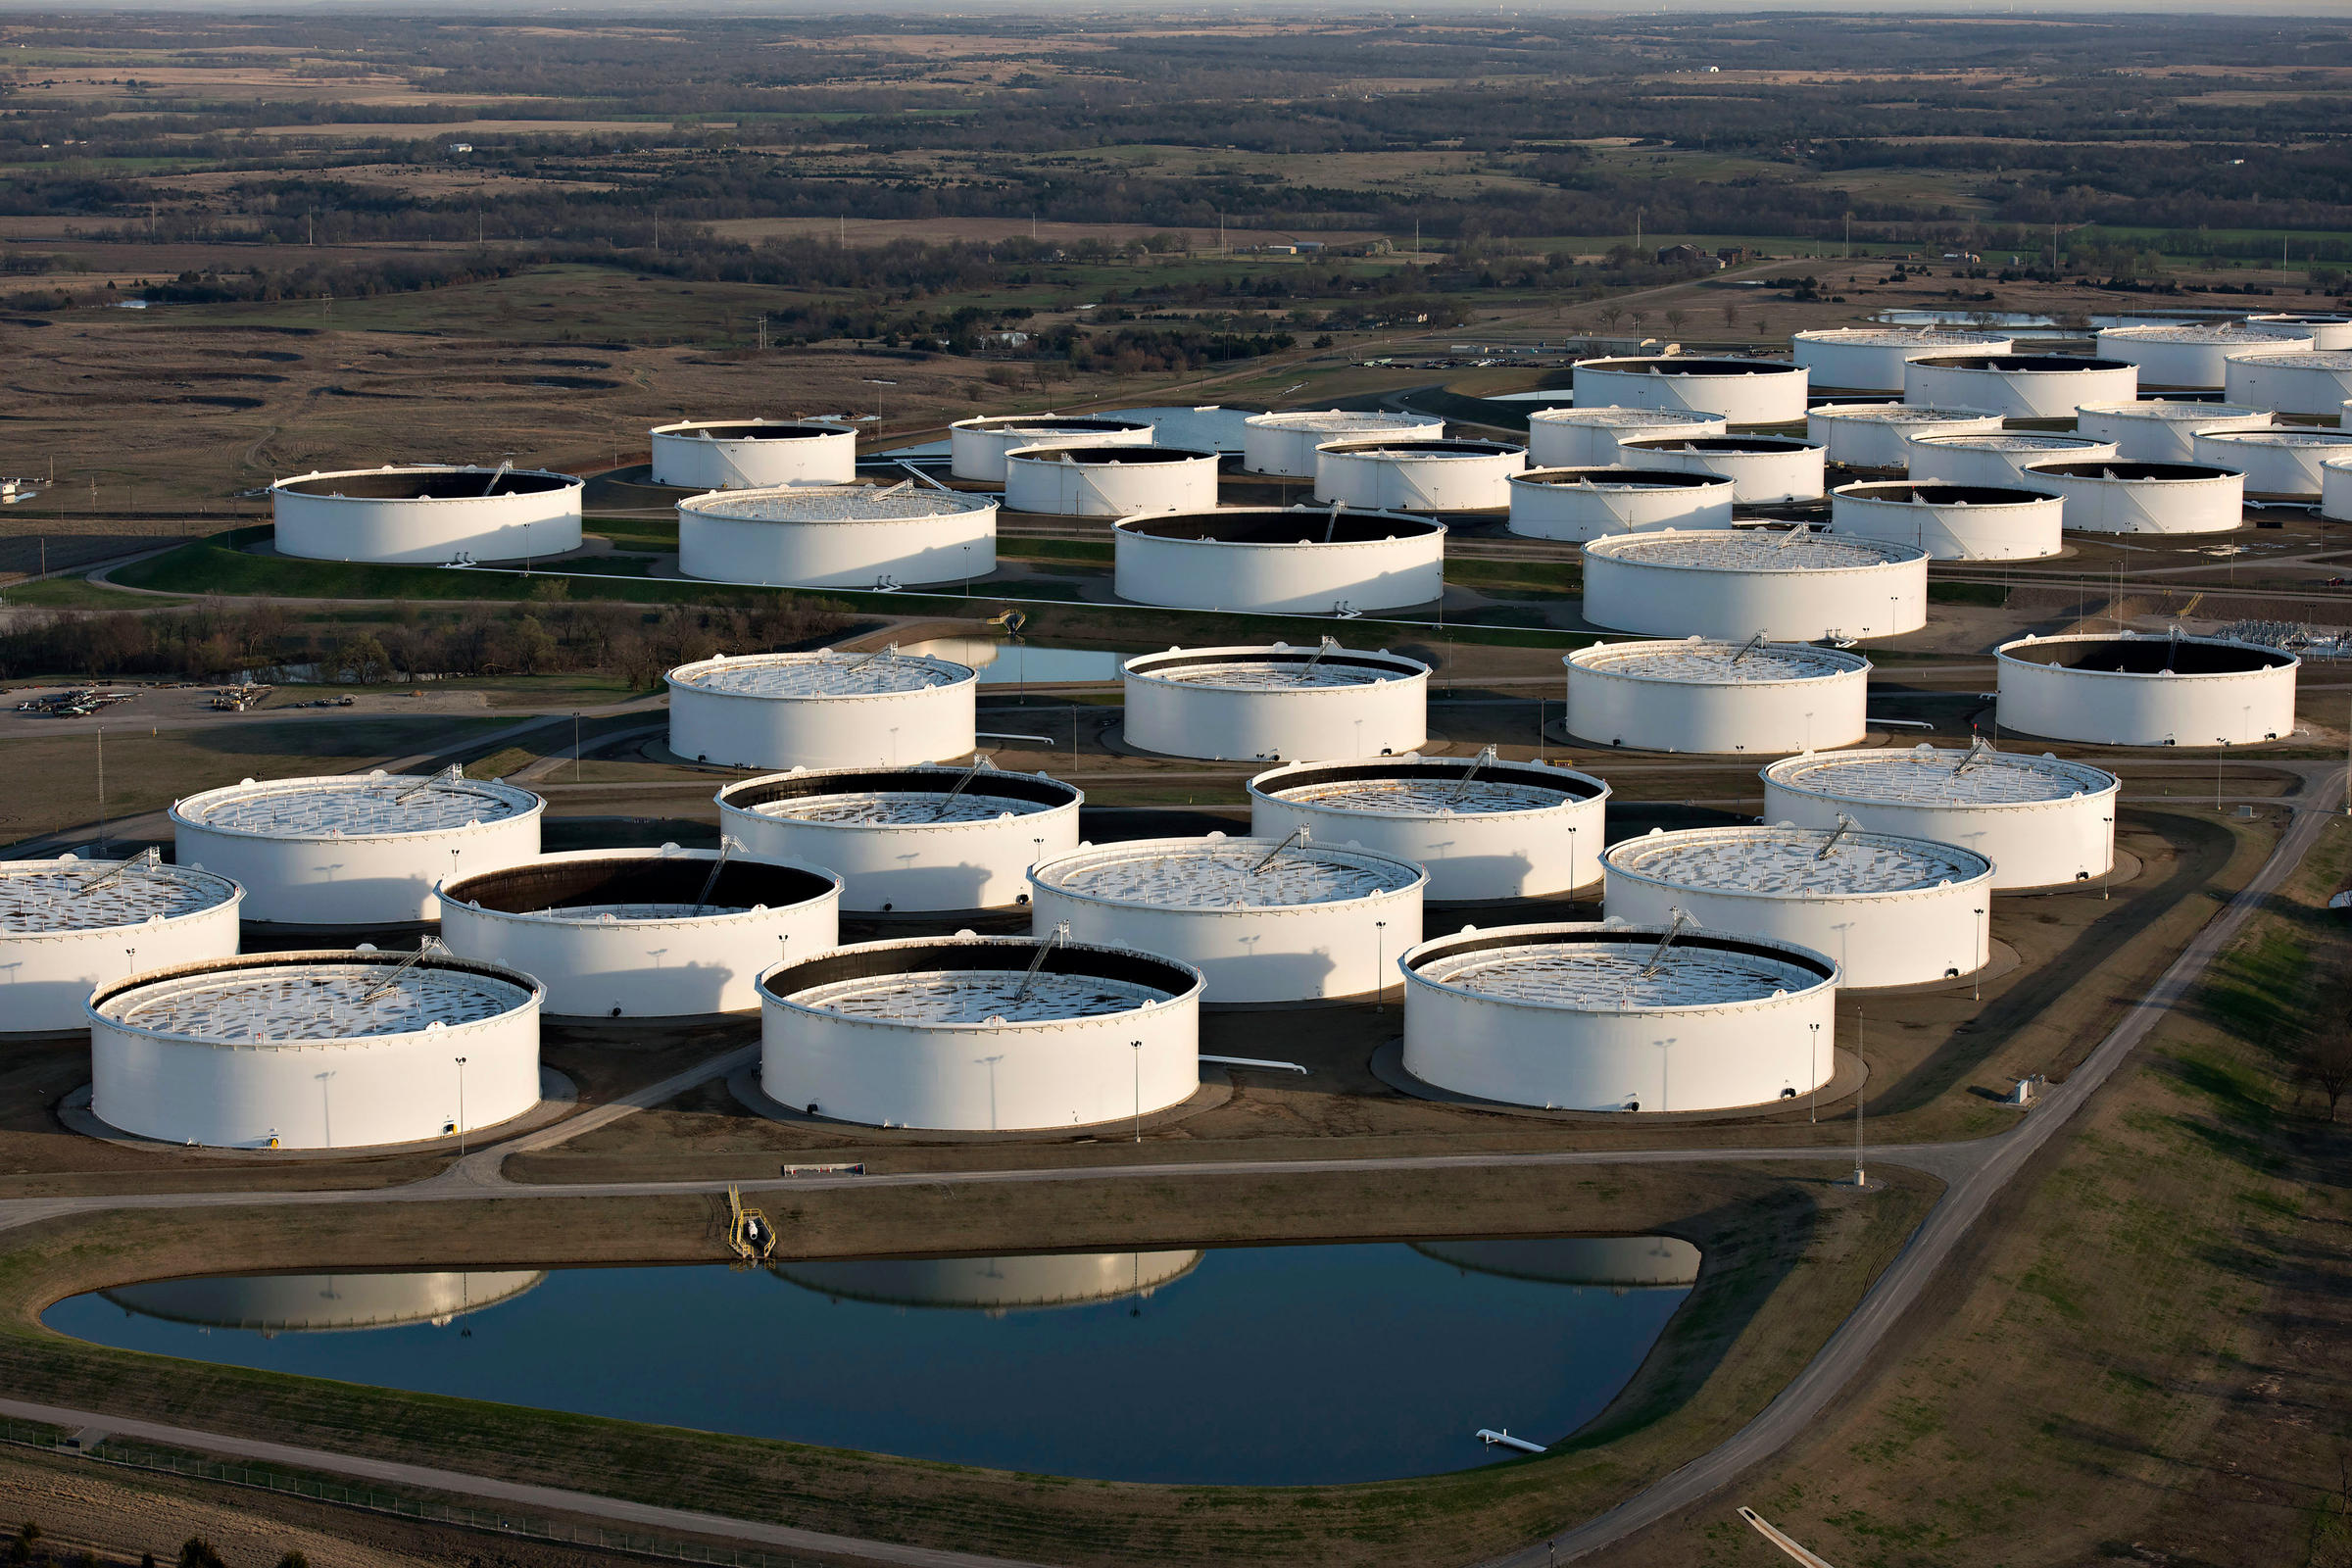 With So Much Oil Flowing, U.S. May Be Reaching Storage Limits | KOSU